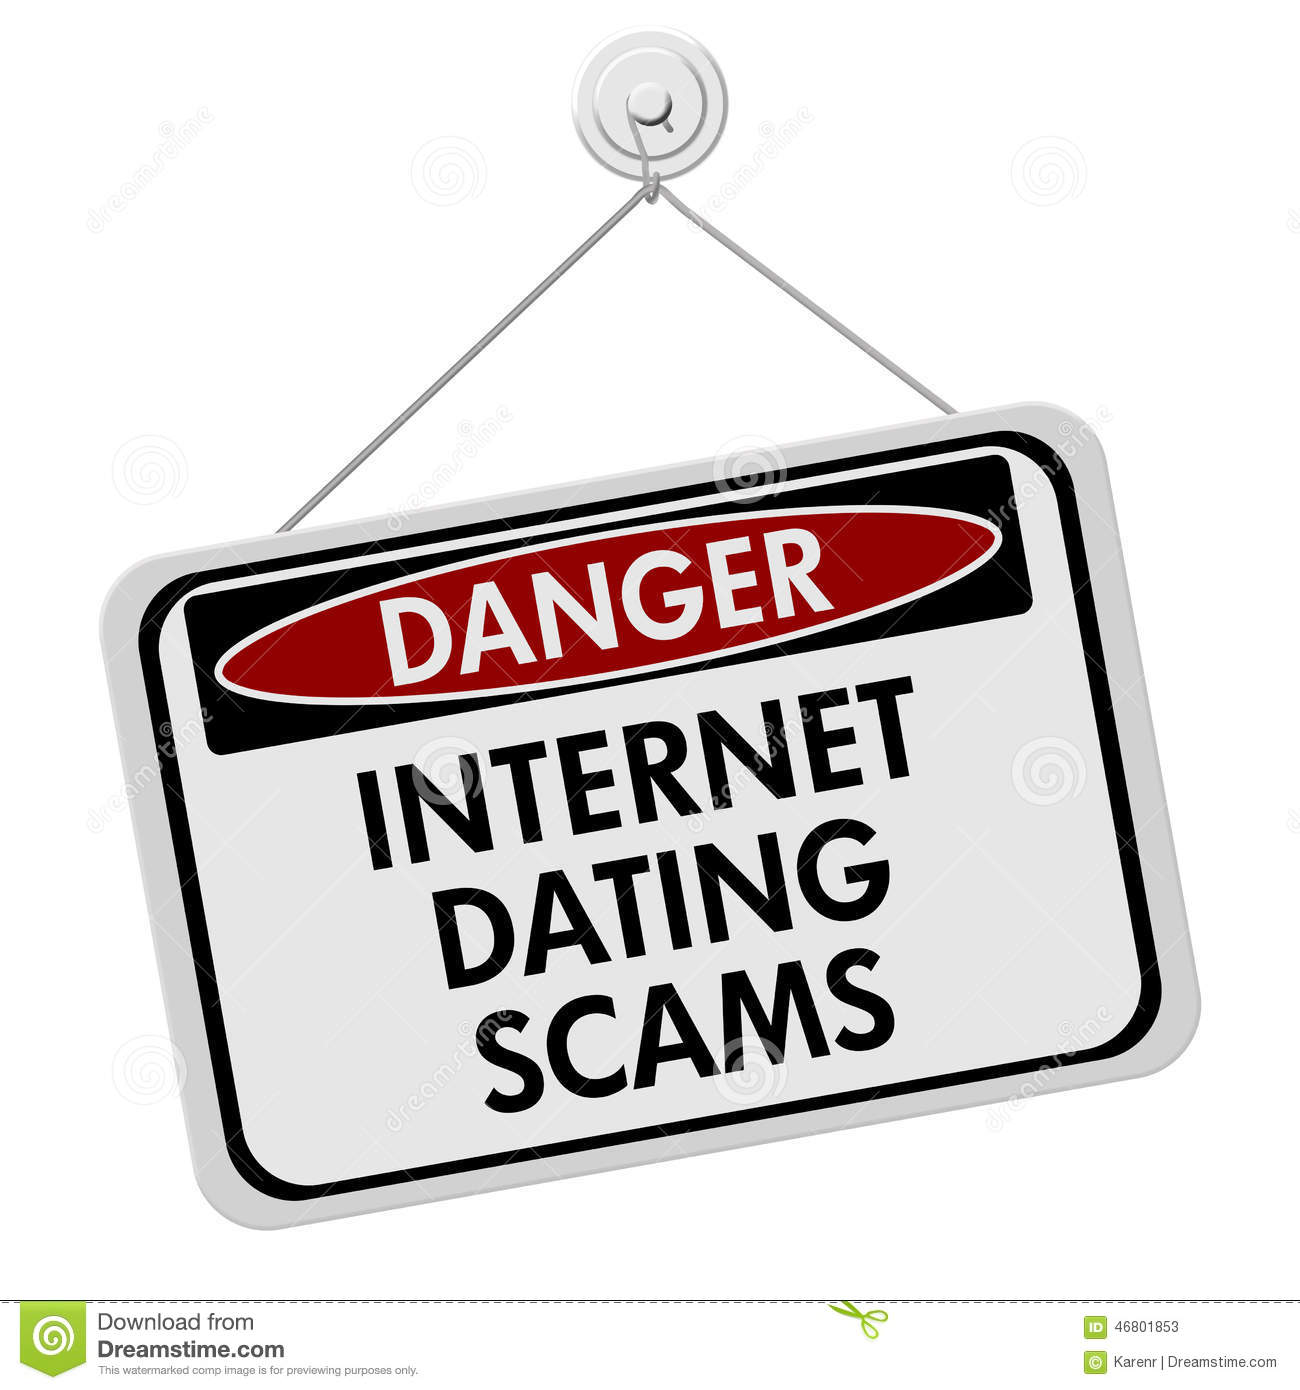 online dating scams dangers